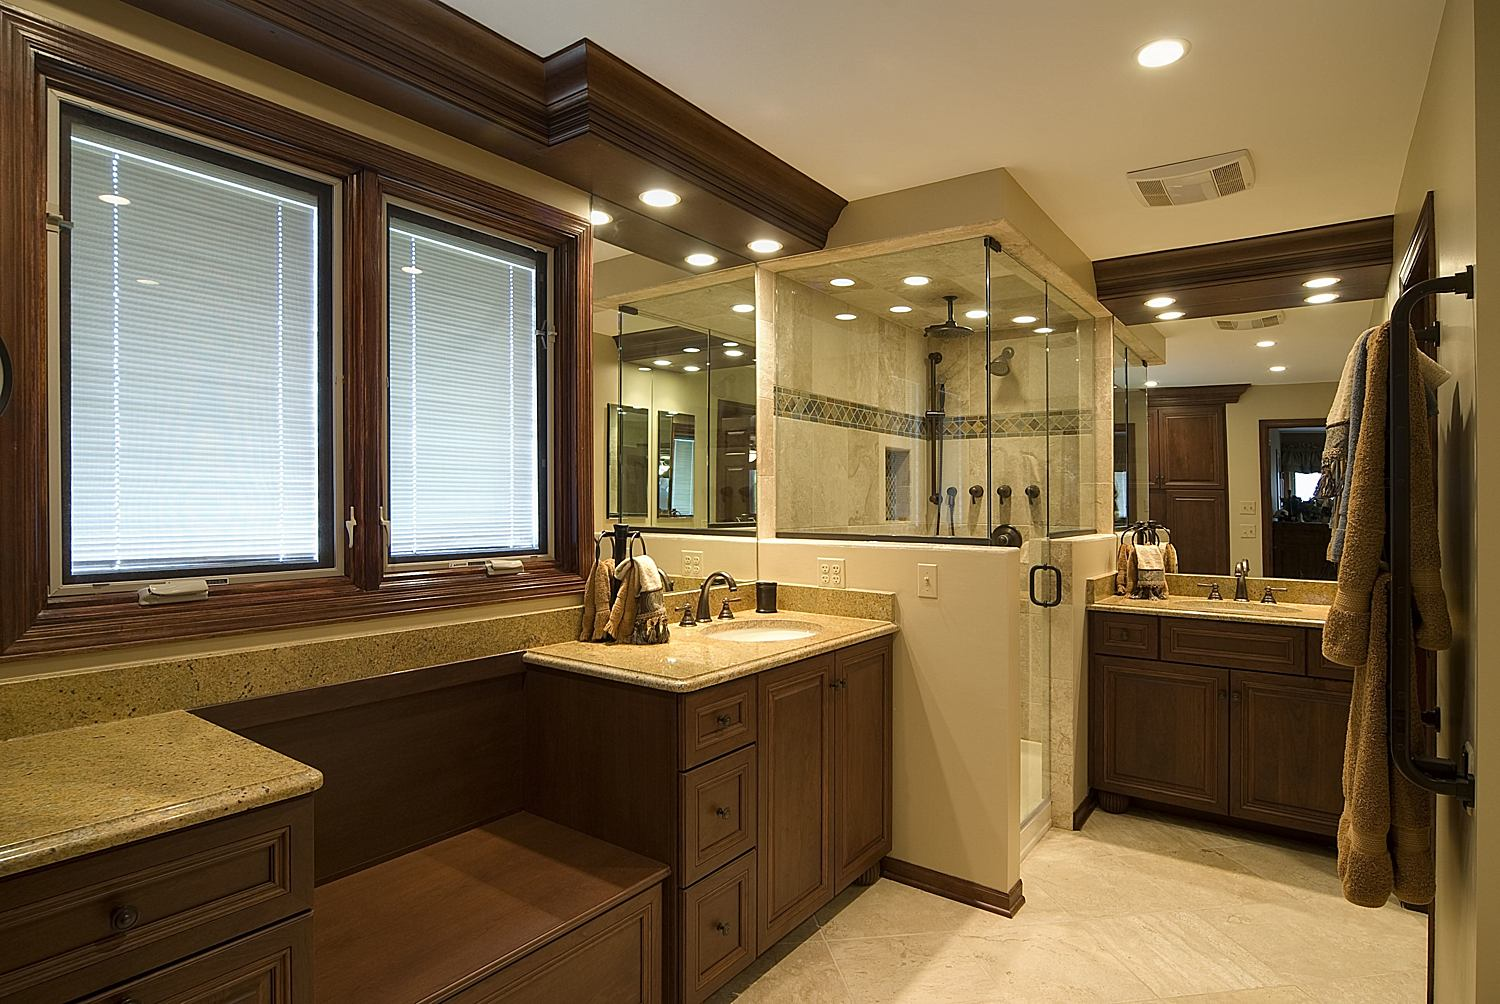 Master bathroom designs be equipped tiny bathroom designs be equipped bathroom layout